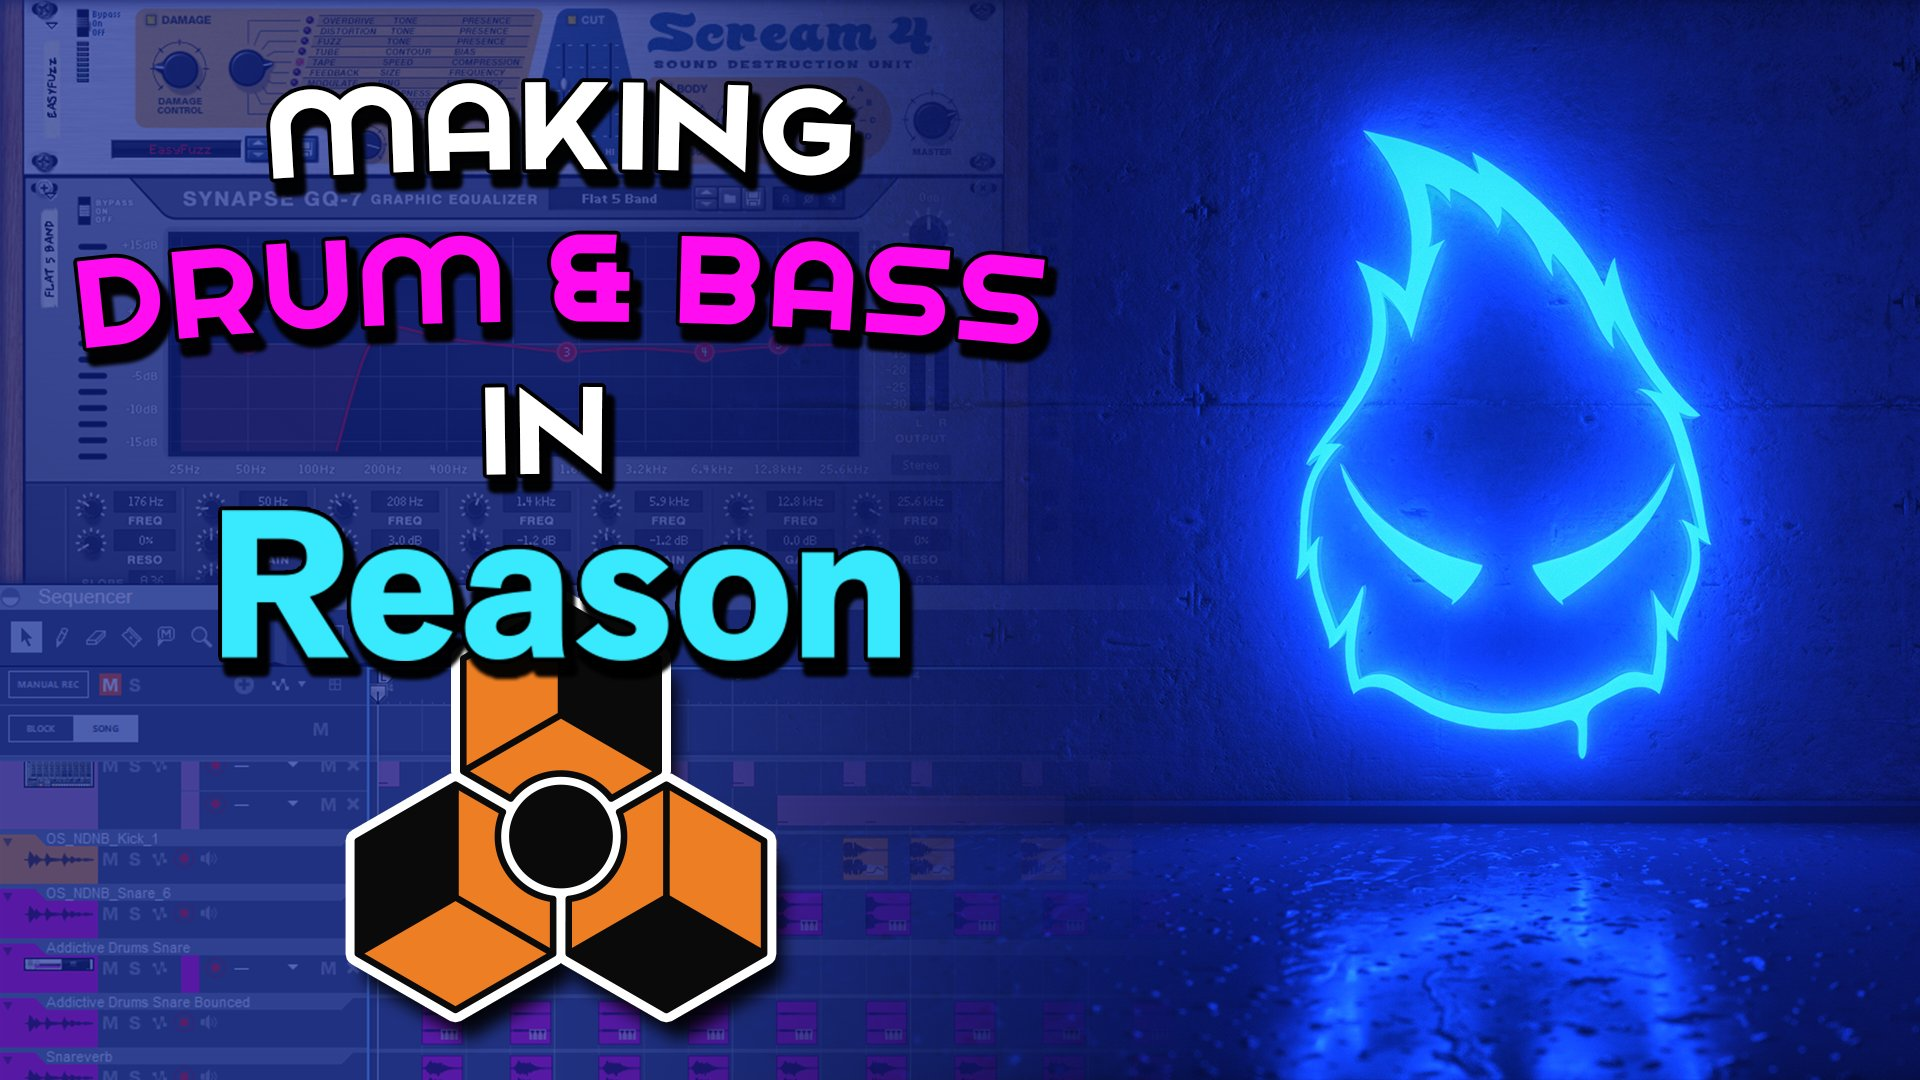 How to Make a Drum n Bass Track in Reason